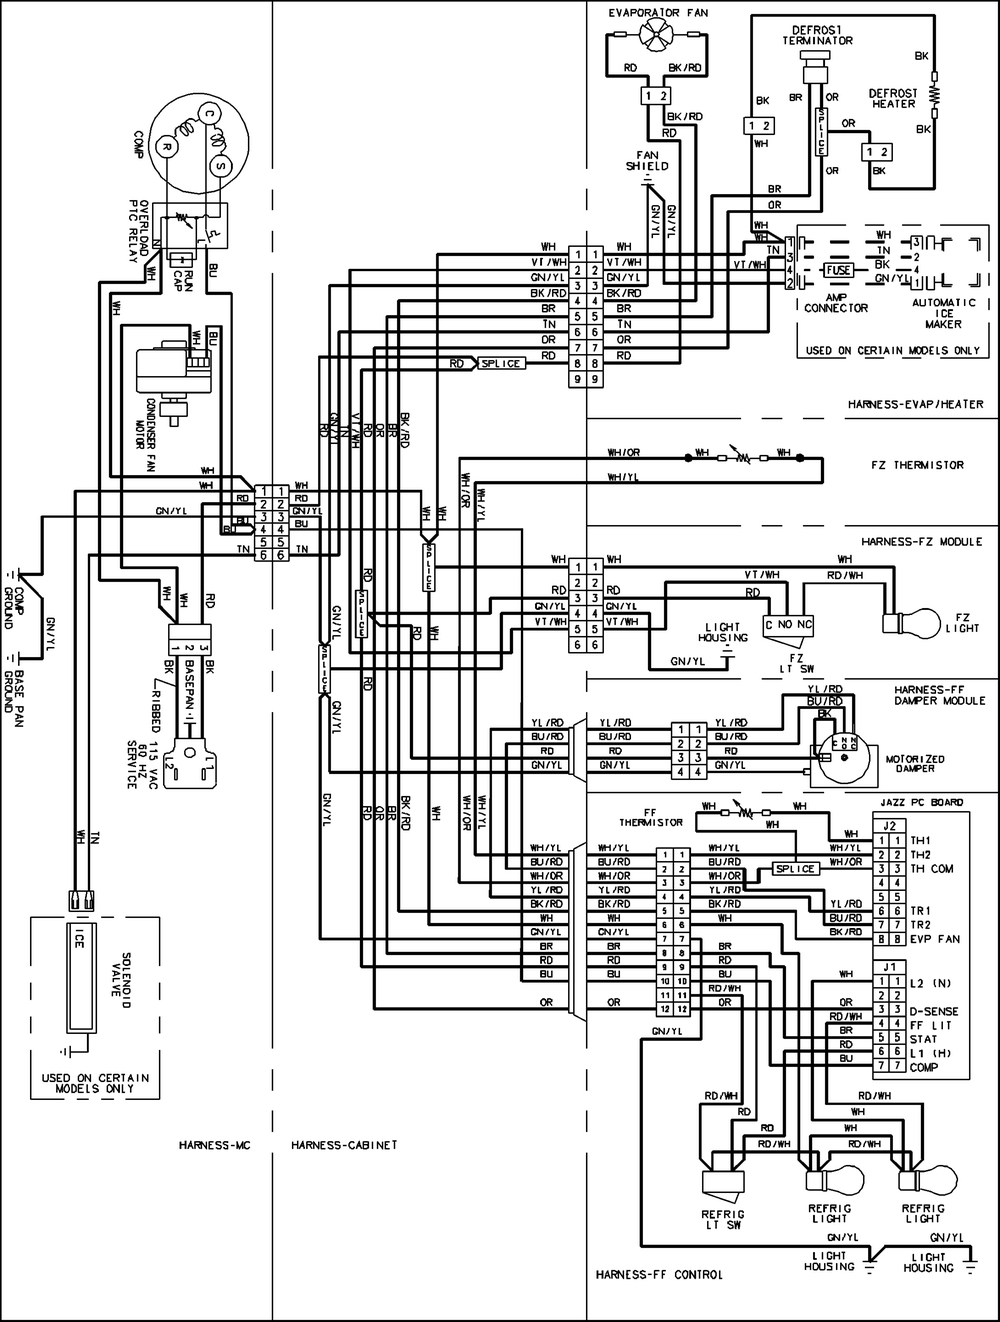 electrical wiring diagram of refrigerator refrigerator wiring diagram pdf | free wiring diagram wiring diagram of refrigerator pdf